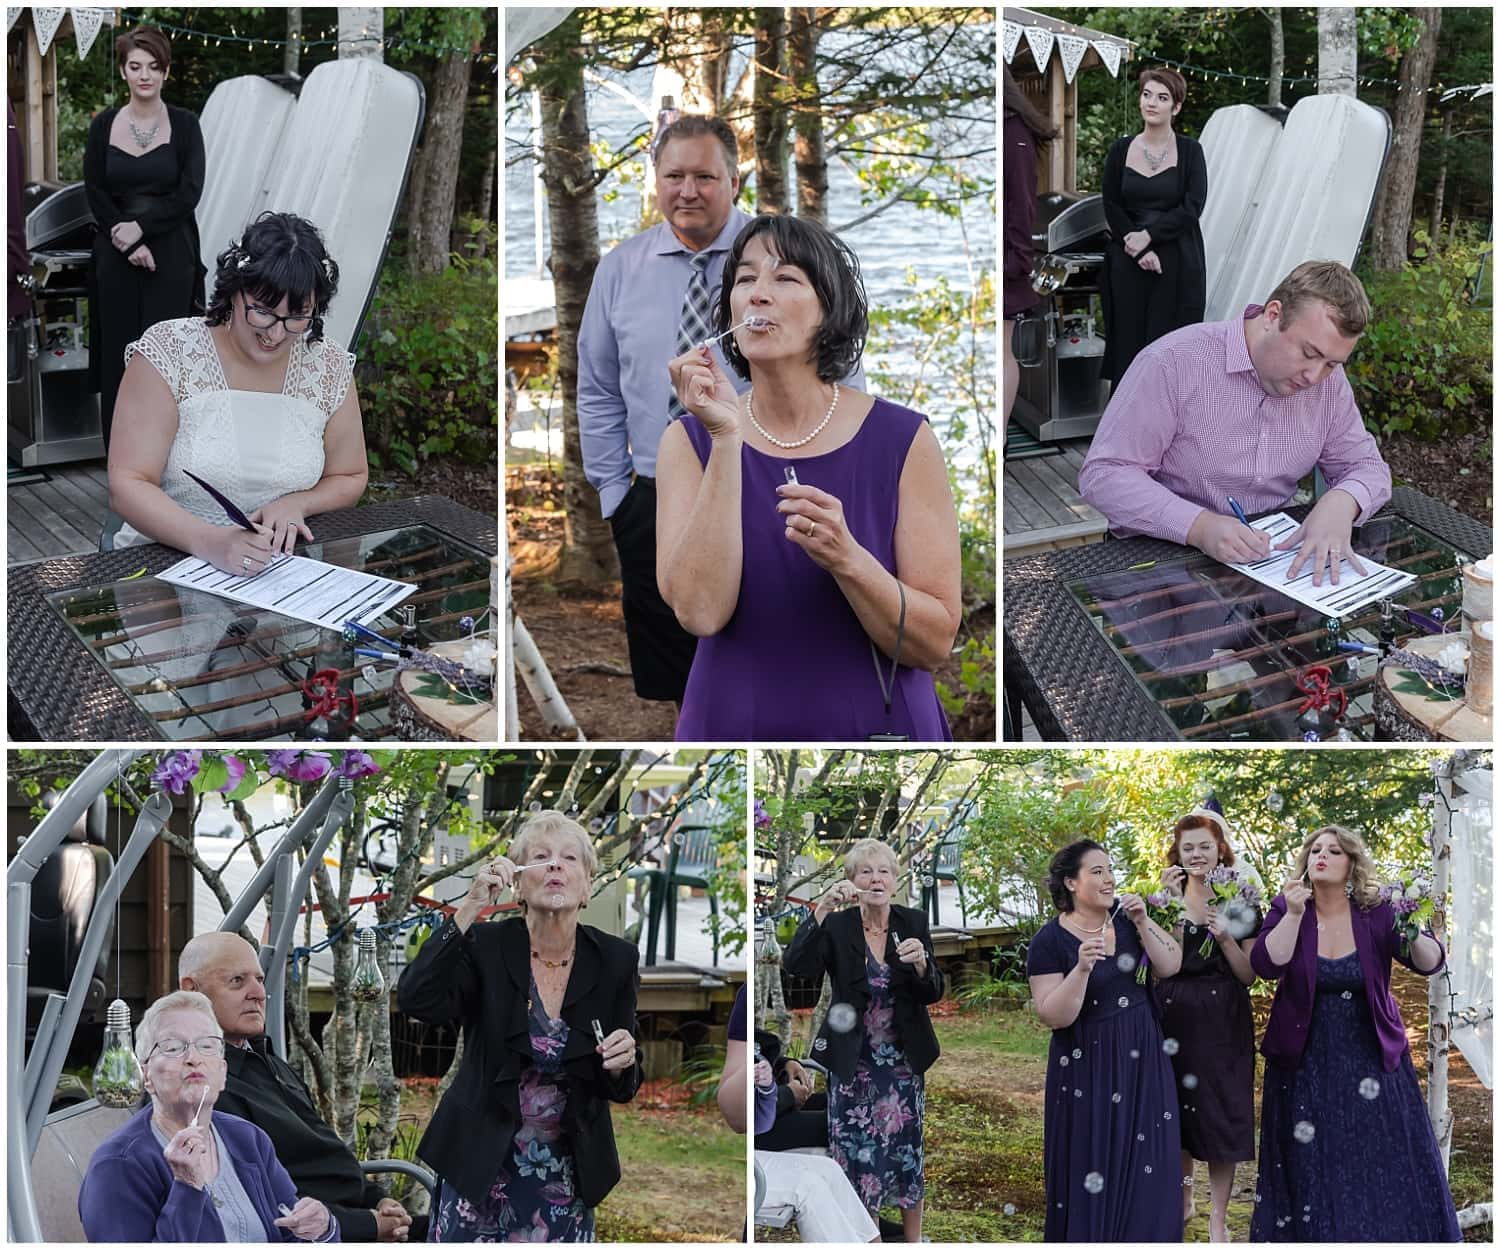 The bride and groom sign their marriage certificate while guests and bridesmaids blow bubbles around them during their covid intimate wedding ceremony in Hubbards NS.